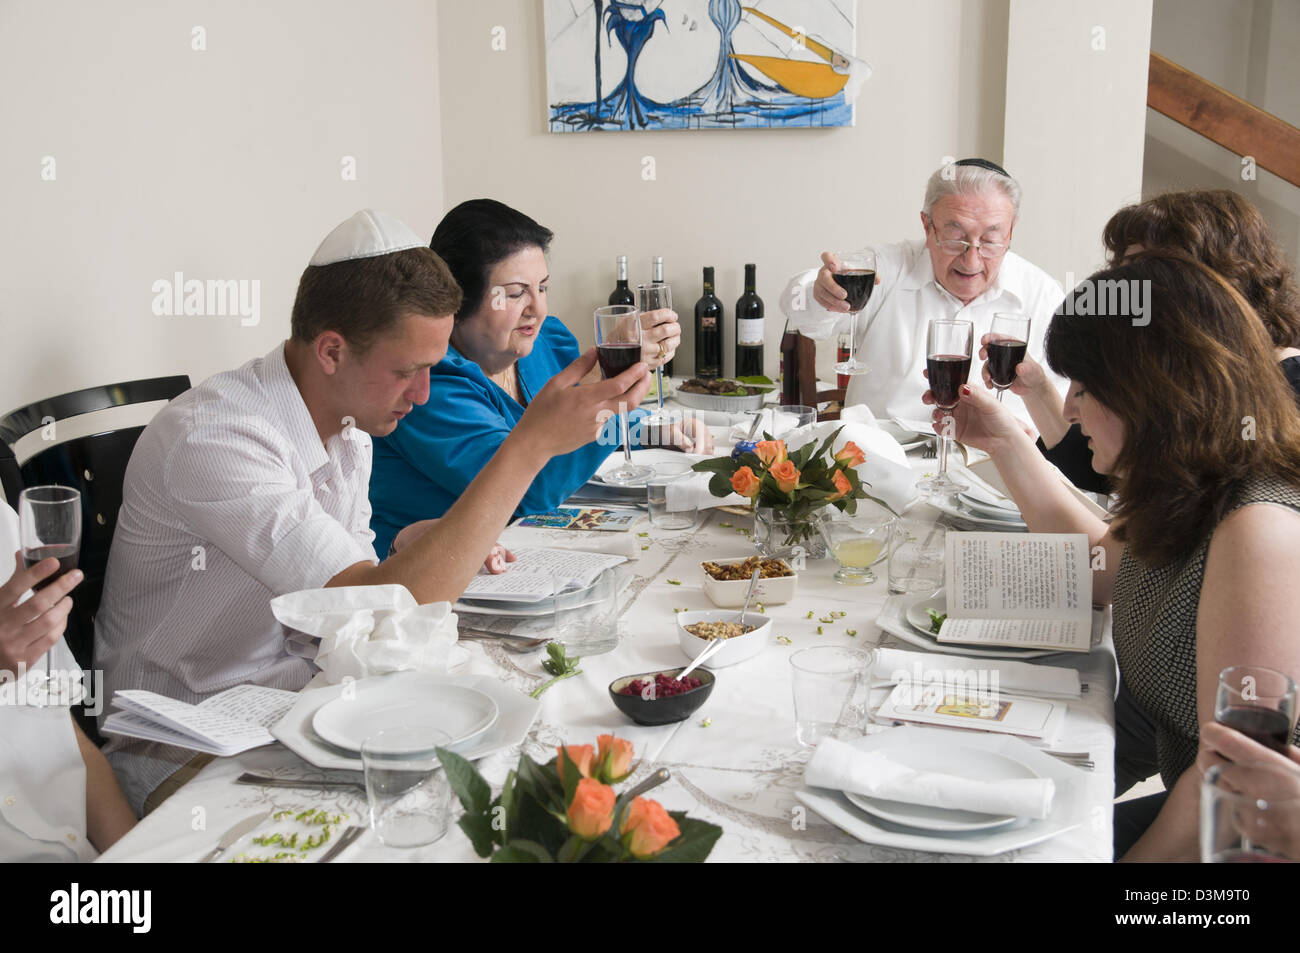 family sitting around a table set for a Jewish Festive meal on Passover (transliterated as Pesach or Pesah) - Stock Image